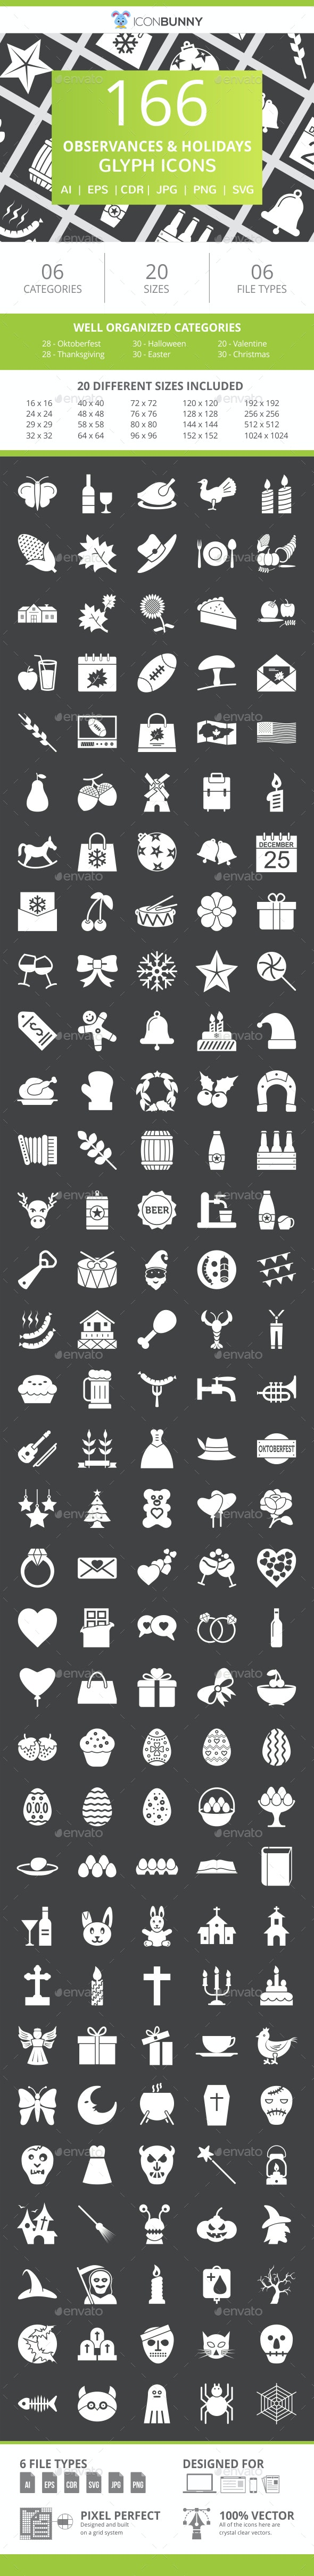 166 Observances & Holiday Glyph Inverted Icons - Icons